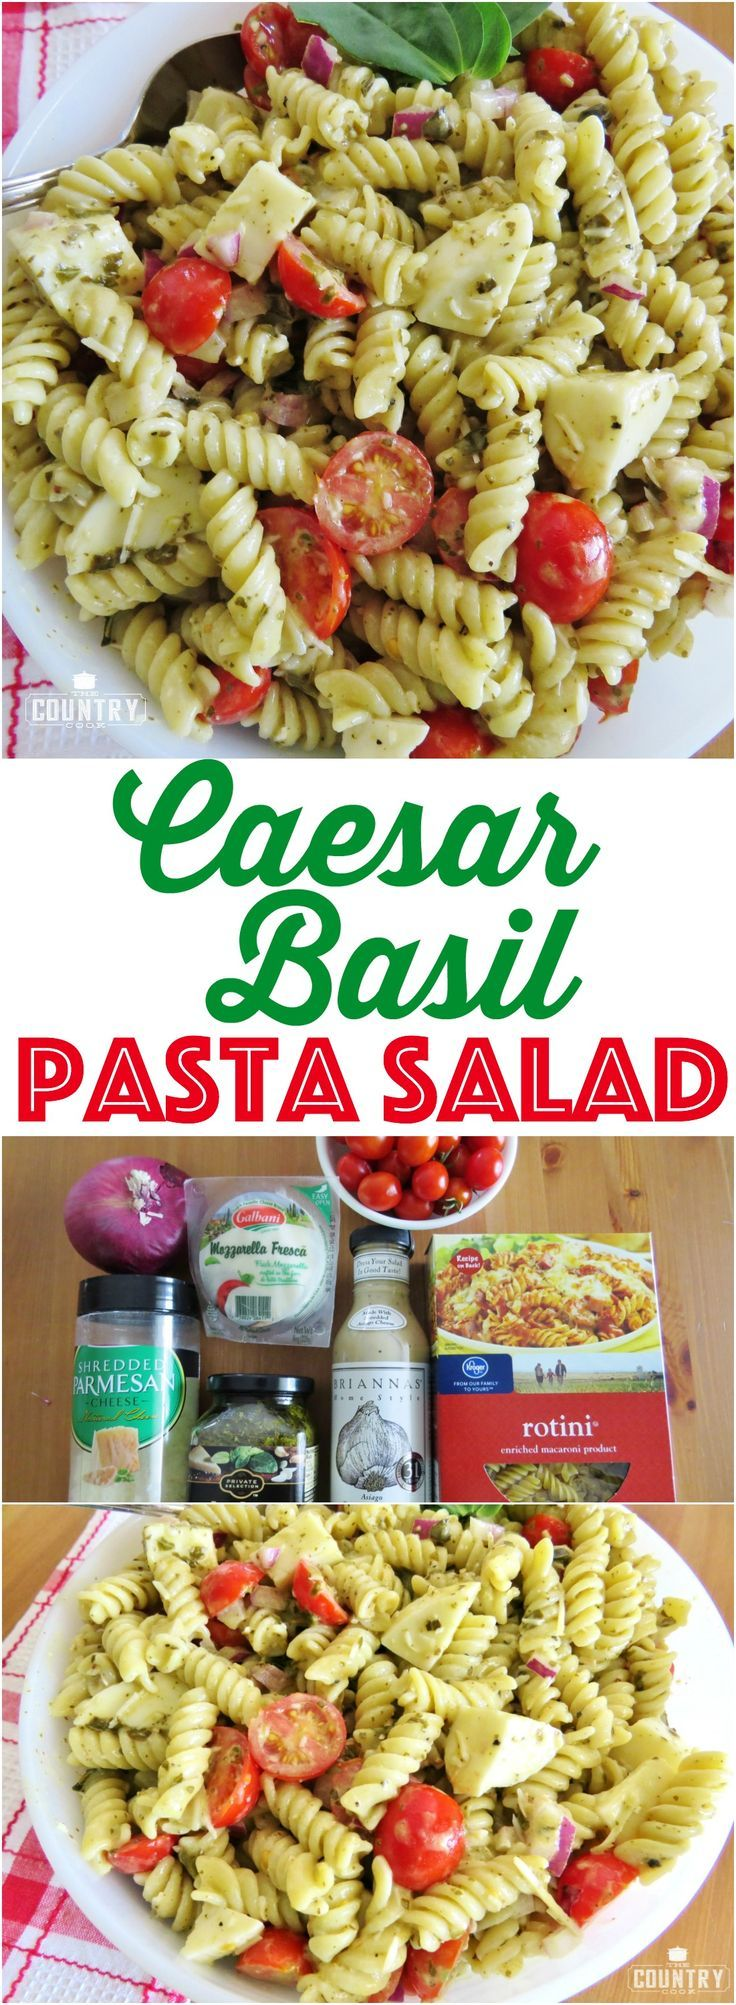 Caesar Basil Pasta Salad recipe from The Country Cook